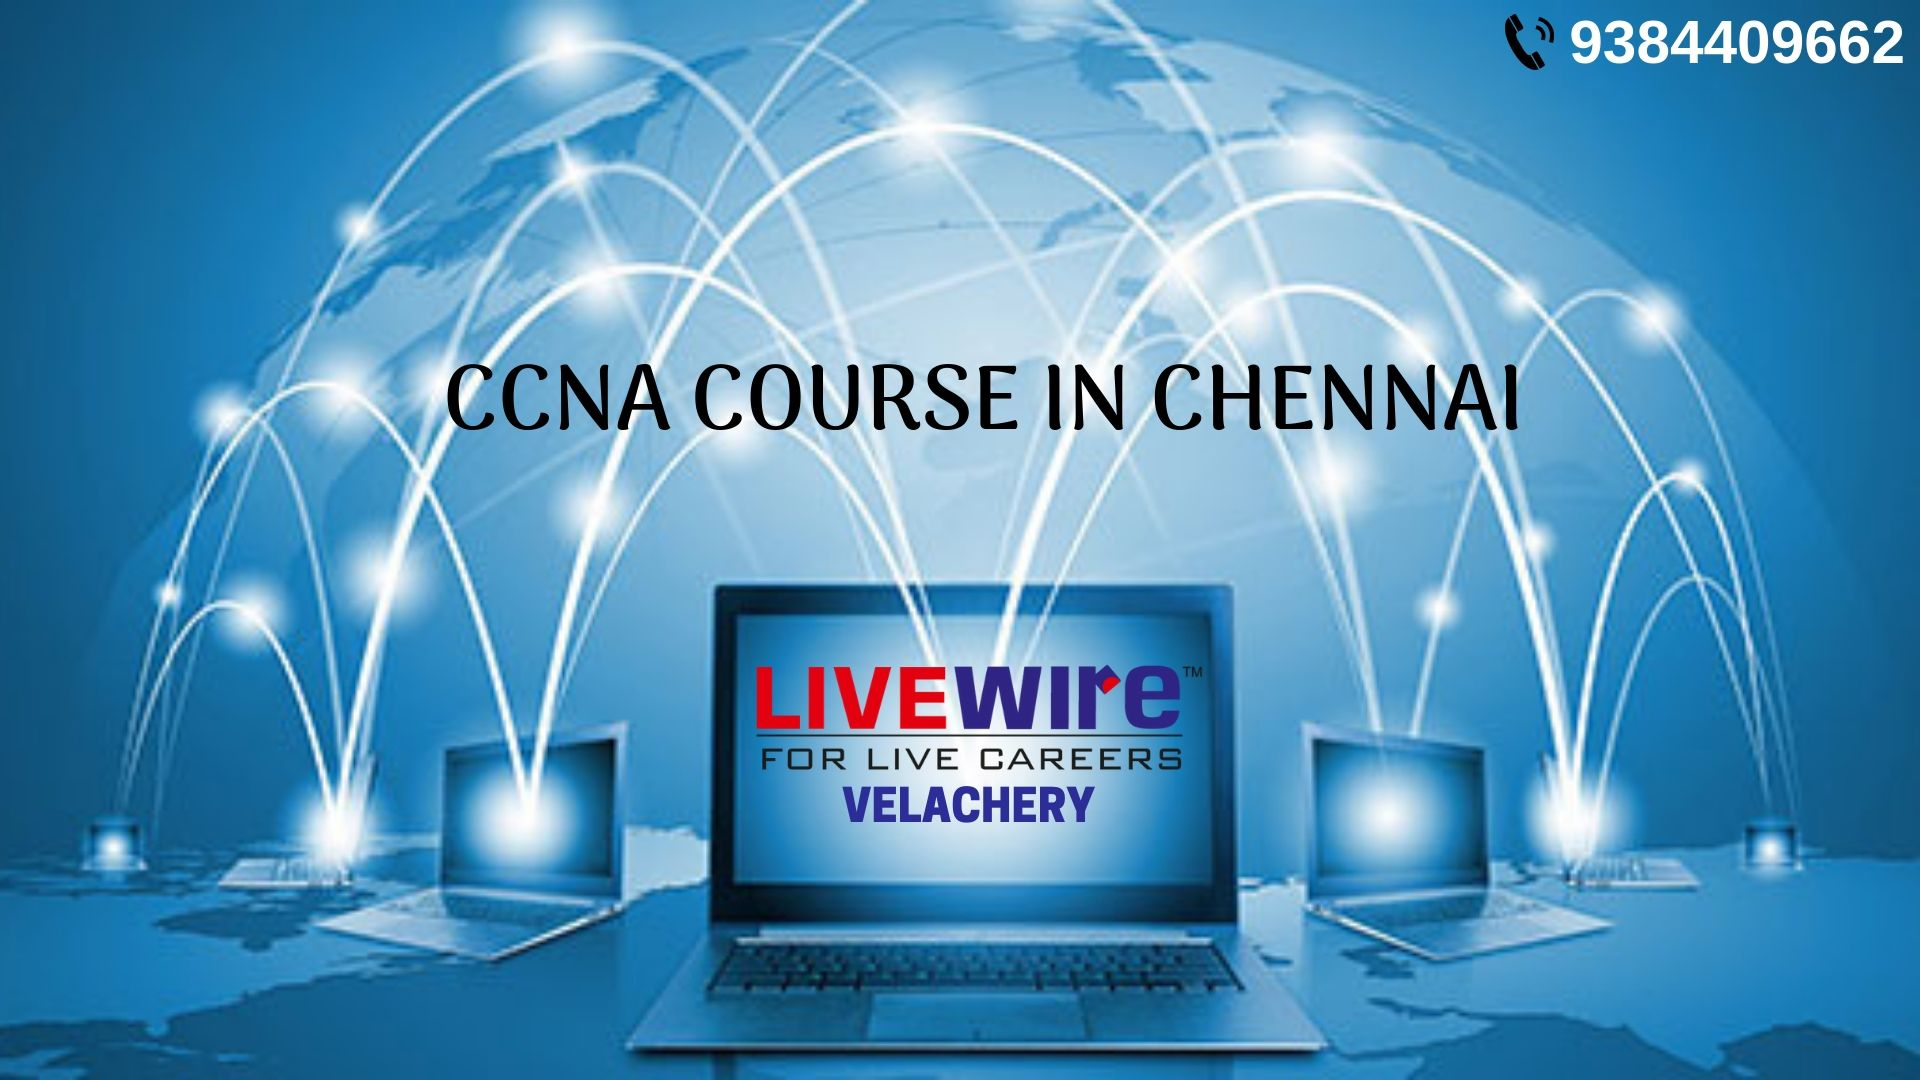 Does a ccna certification help in getting good jobs an